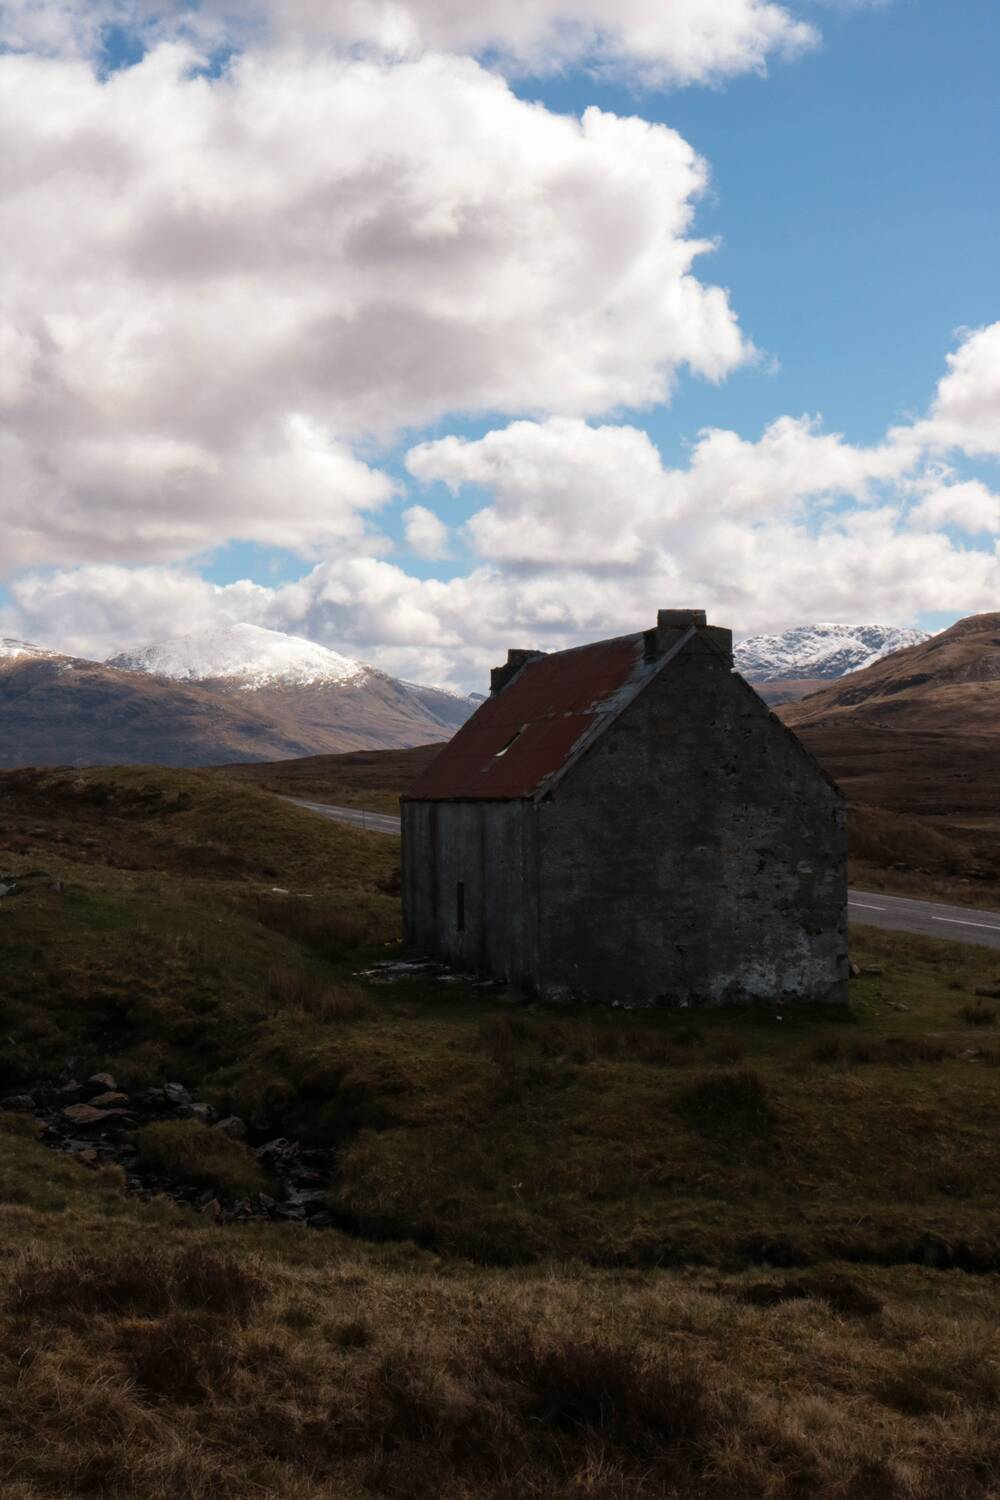 An abandoned bothy stands on a hillside with snow-capped mountains in the distance.